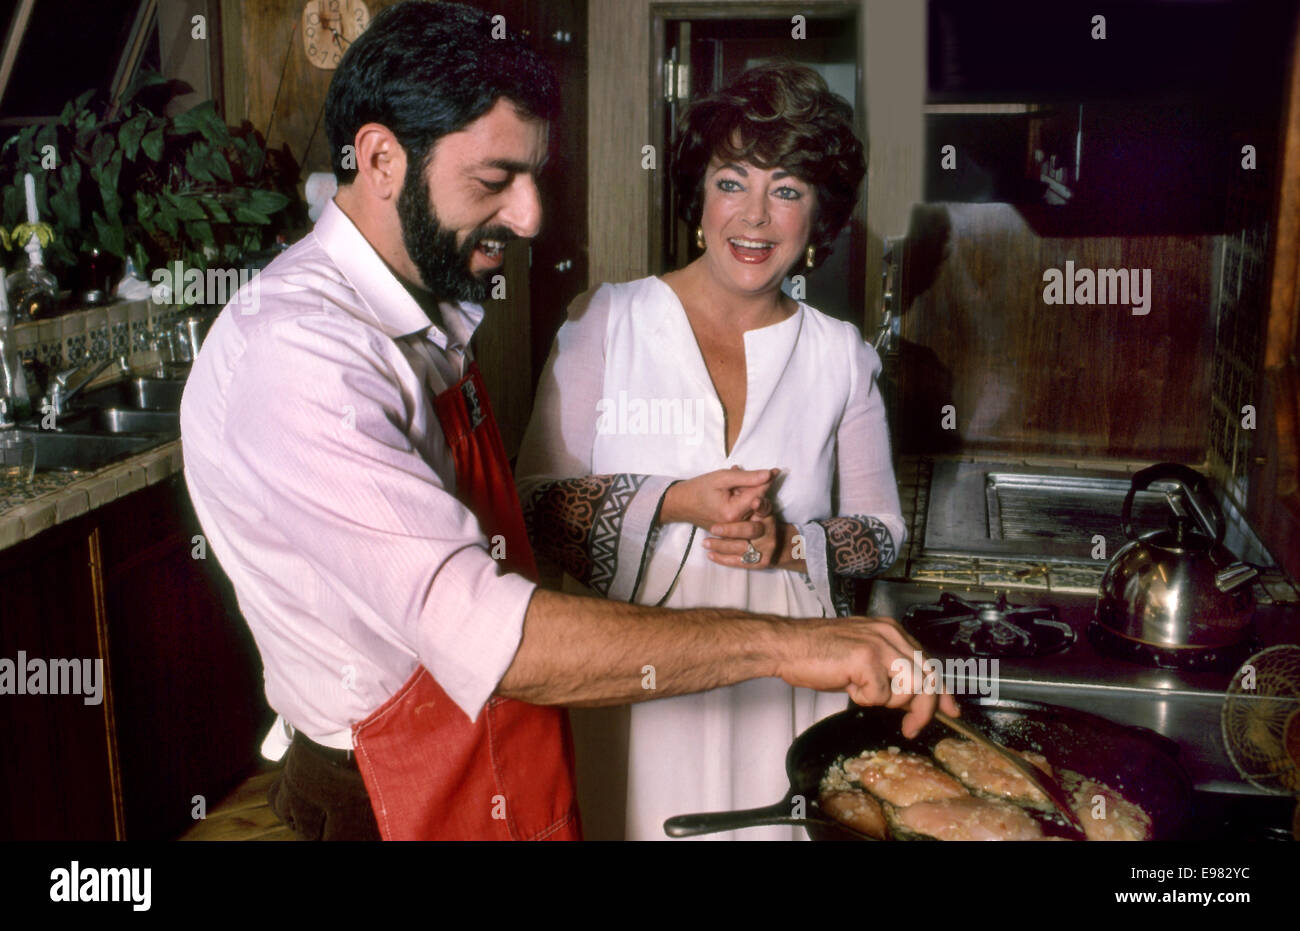 Liz Taylor in the kitchen of her Bel Air home cooking with Nick Grippo circa 1980s - Stock Image